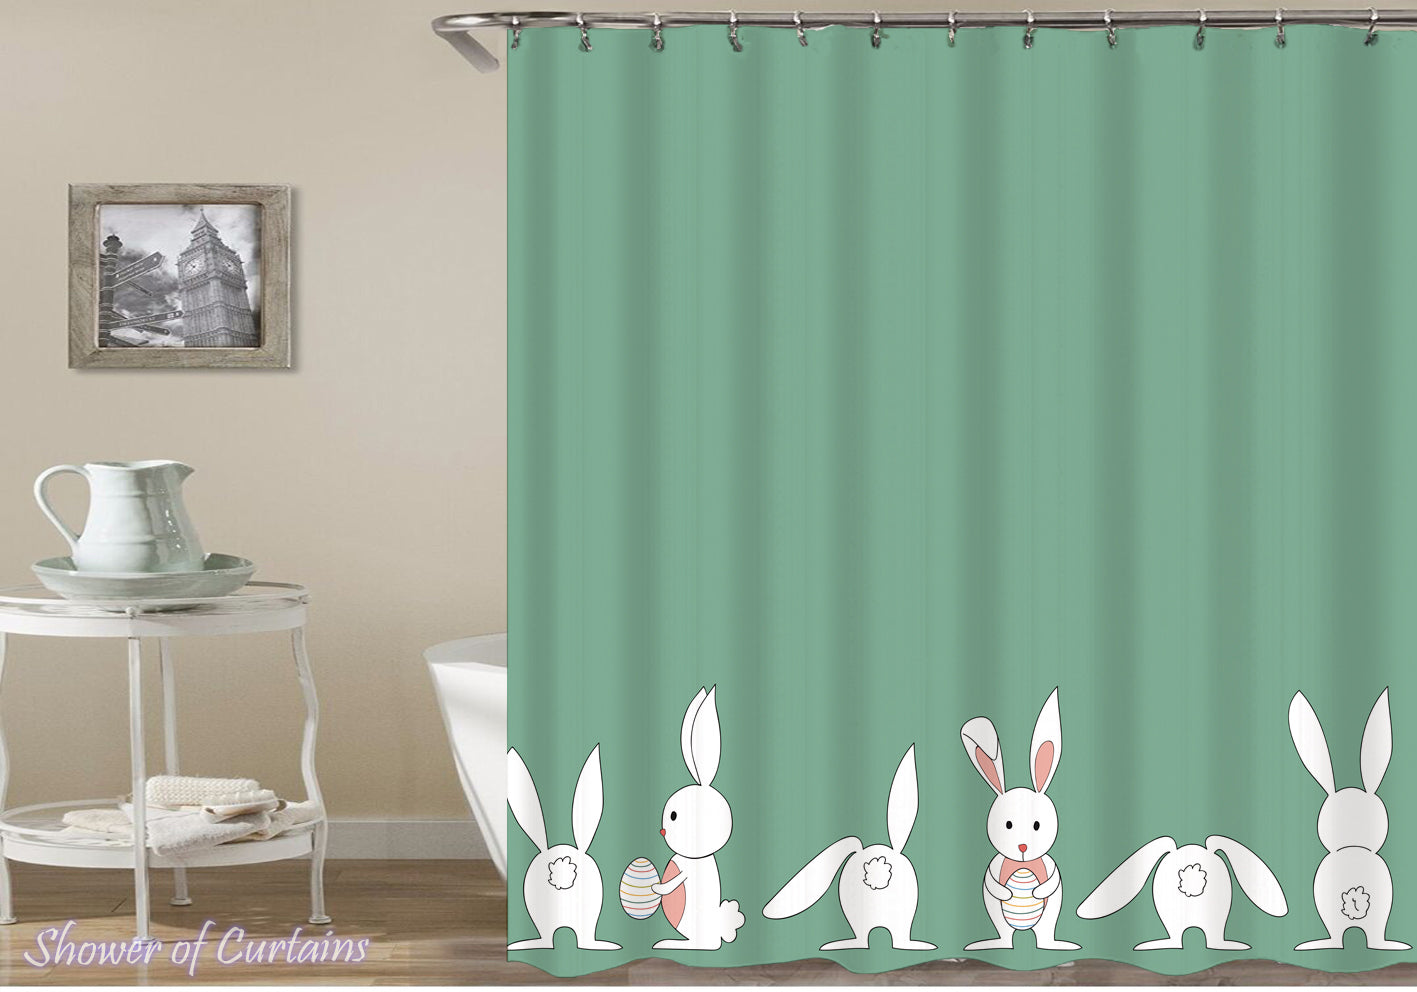 Shower Curtains | Solid Green Behind Cute Little Bunnies – Shower of ...